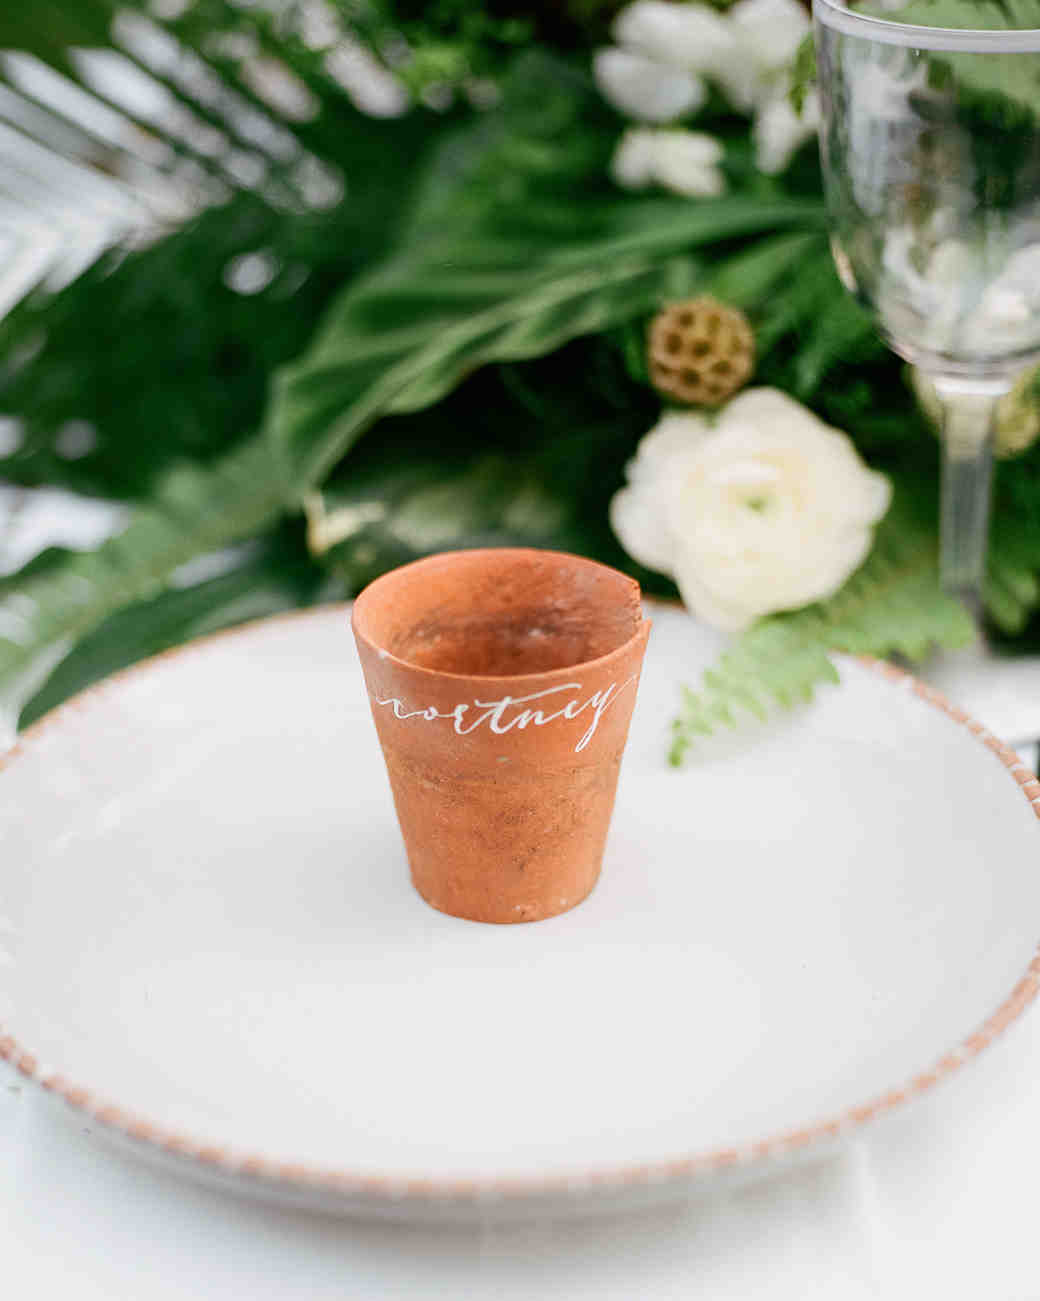 terra cotta decor place setting cup